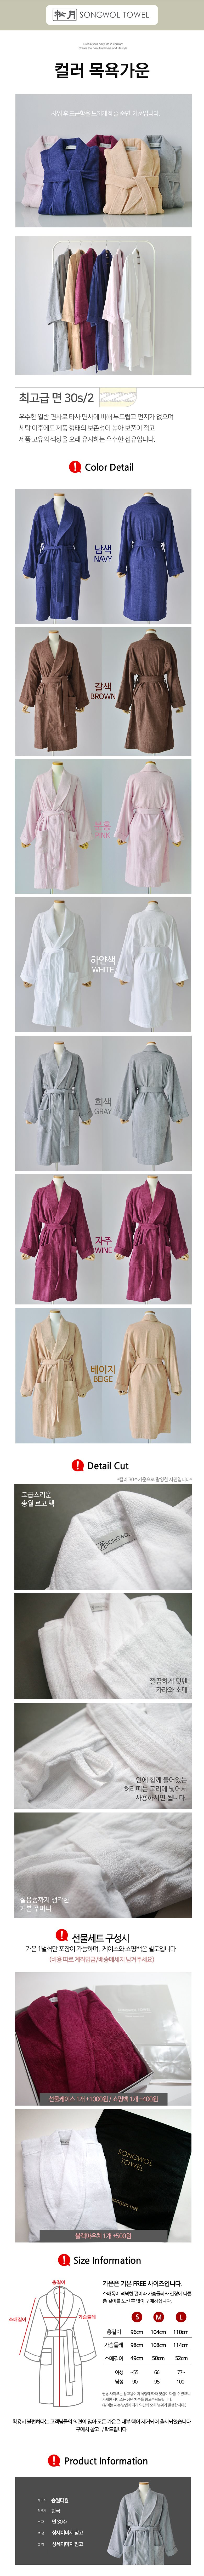 [ songwol ] [SONGWOL] bathrobe color choice 1 (brown/navy/beige/pink/gray/white)